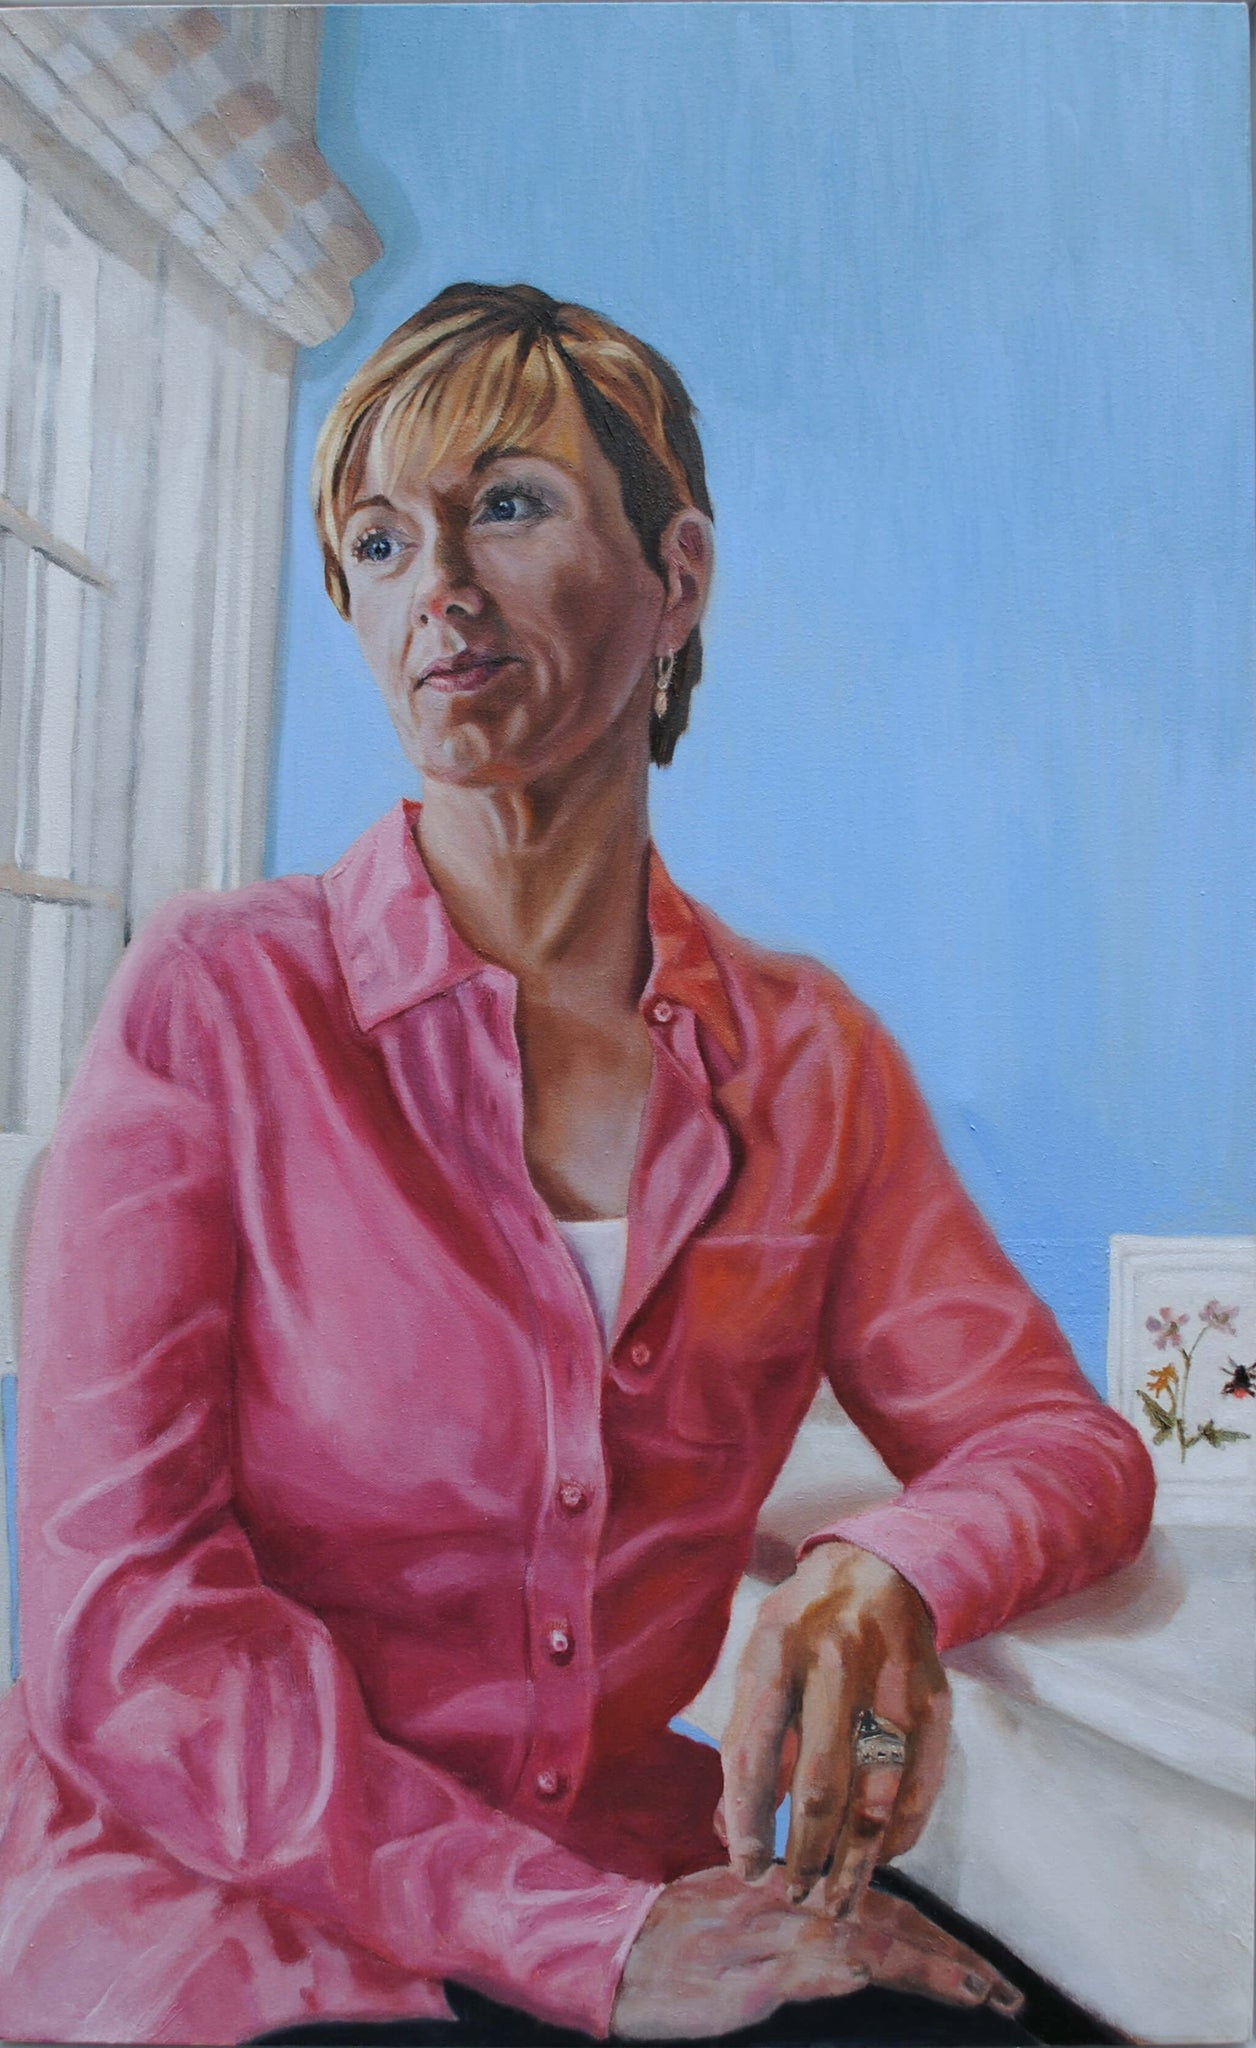 ITV News at Ten's Julie Etchingham portrait in oils on canvas artwork by Stella Tooth